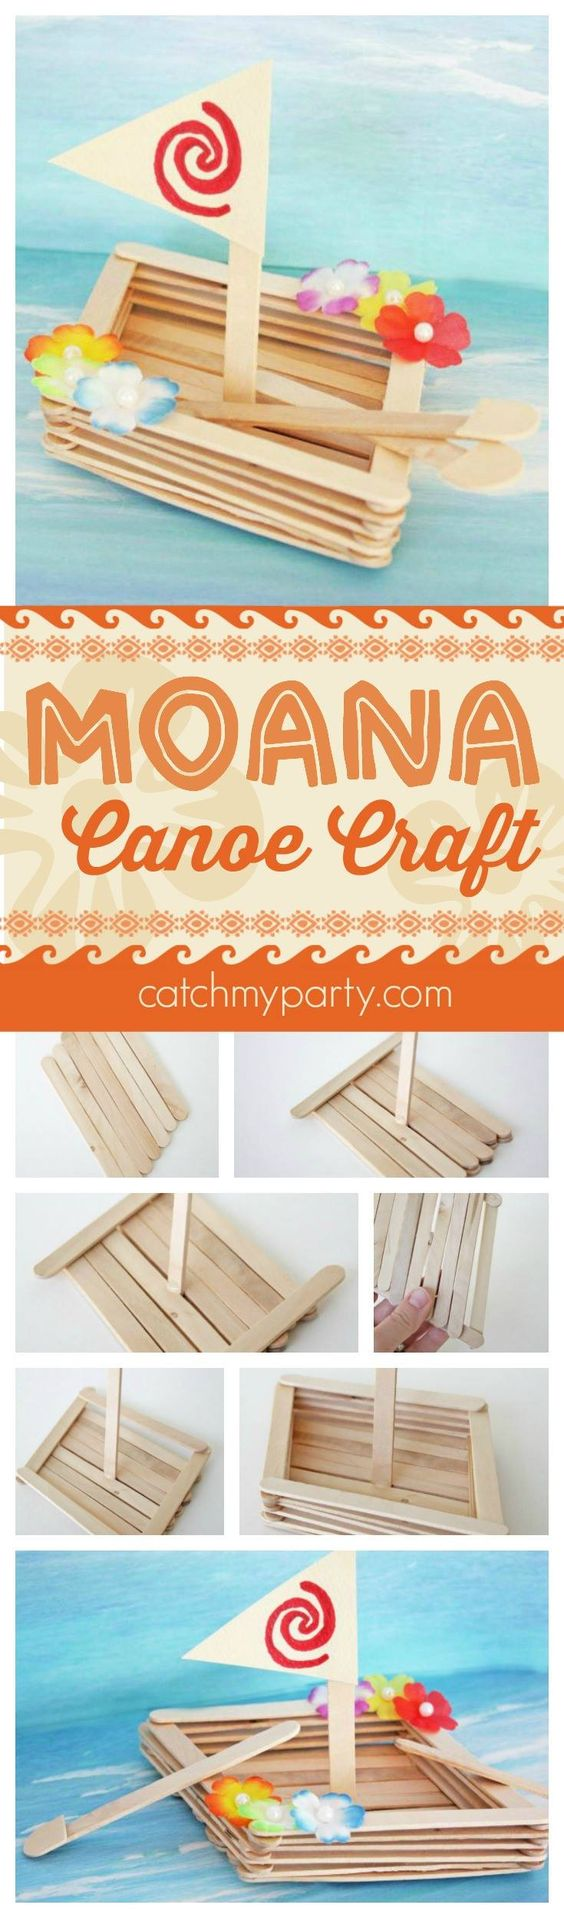 Moana Canoe Craft Made From Popsicle Sticks.